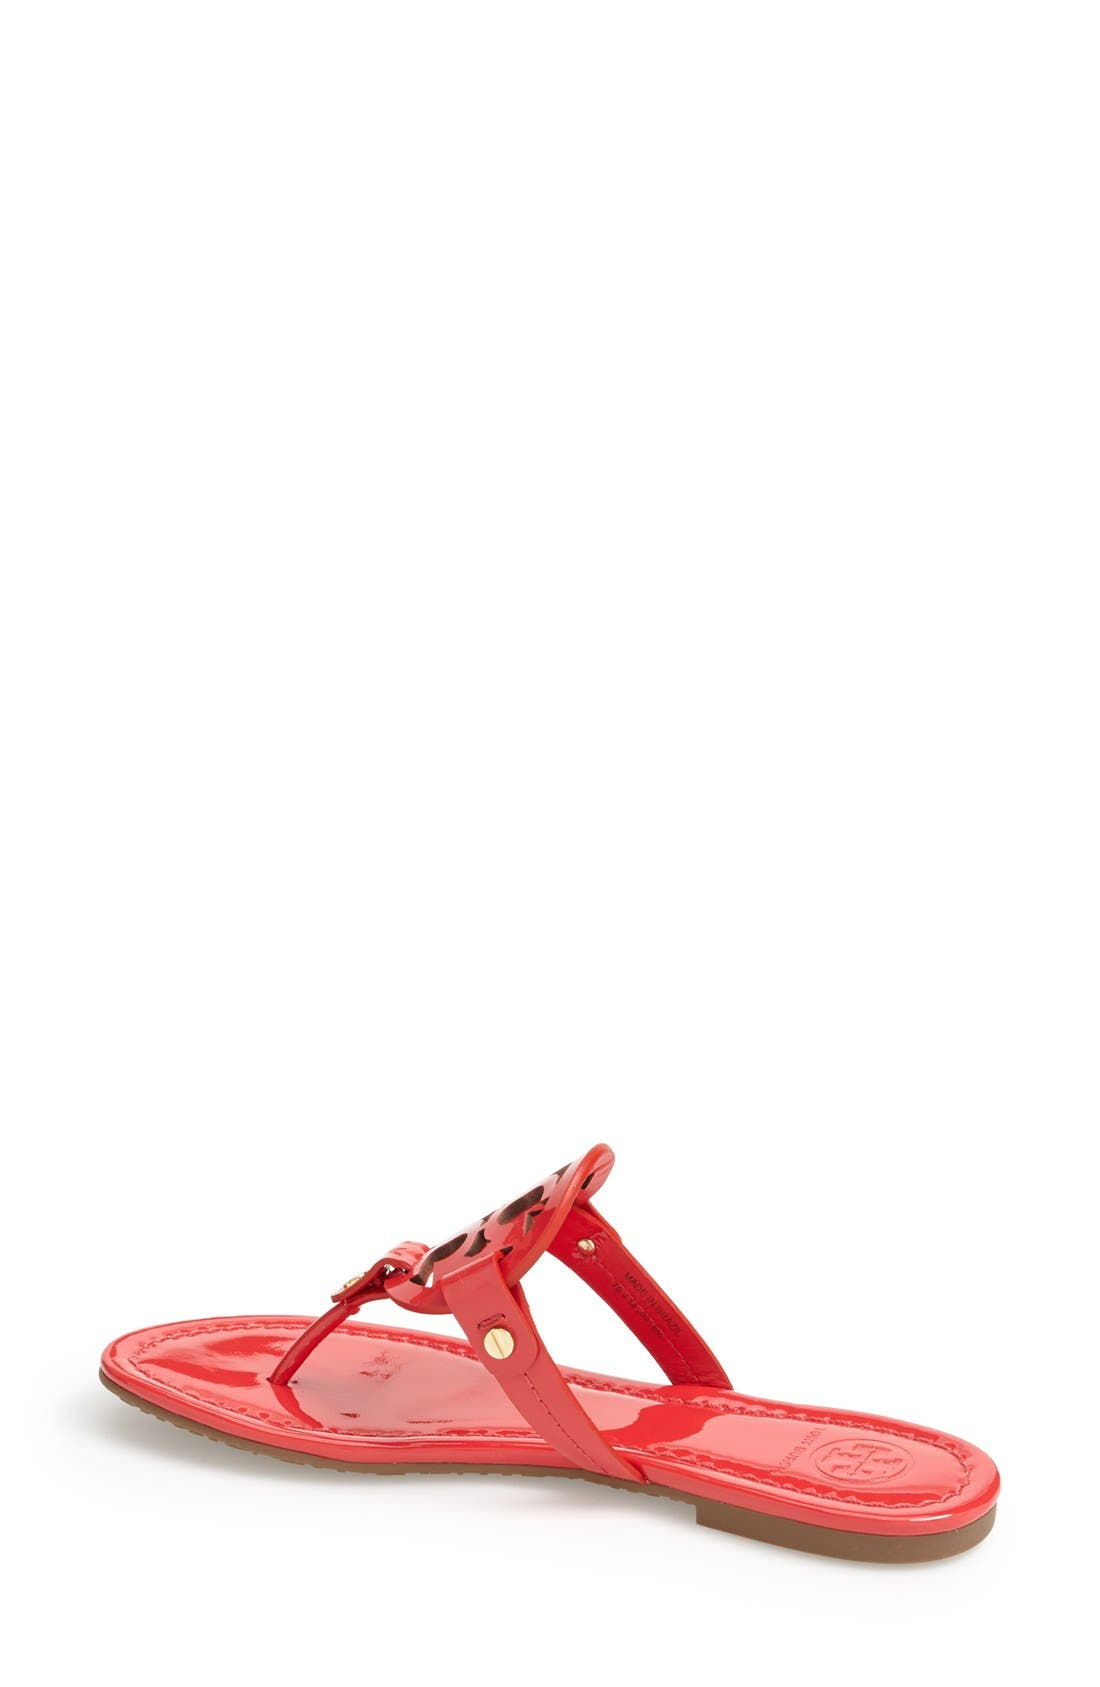 Alternate Image 2  - Tory Burch 'Miller' Sandal (Women) (Nordstrom Exclusive)